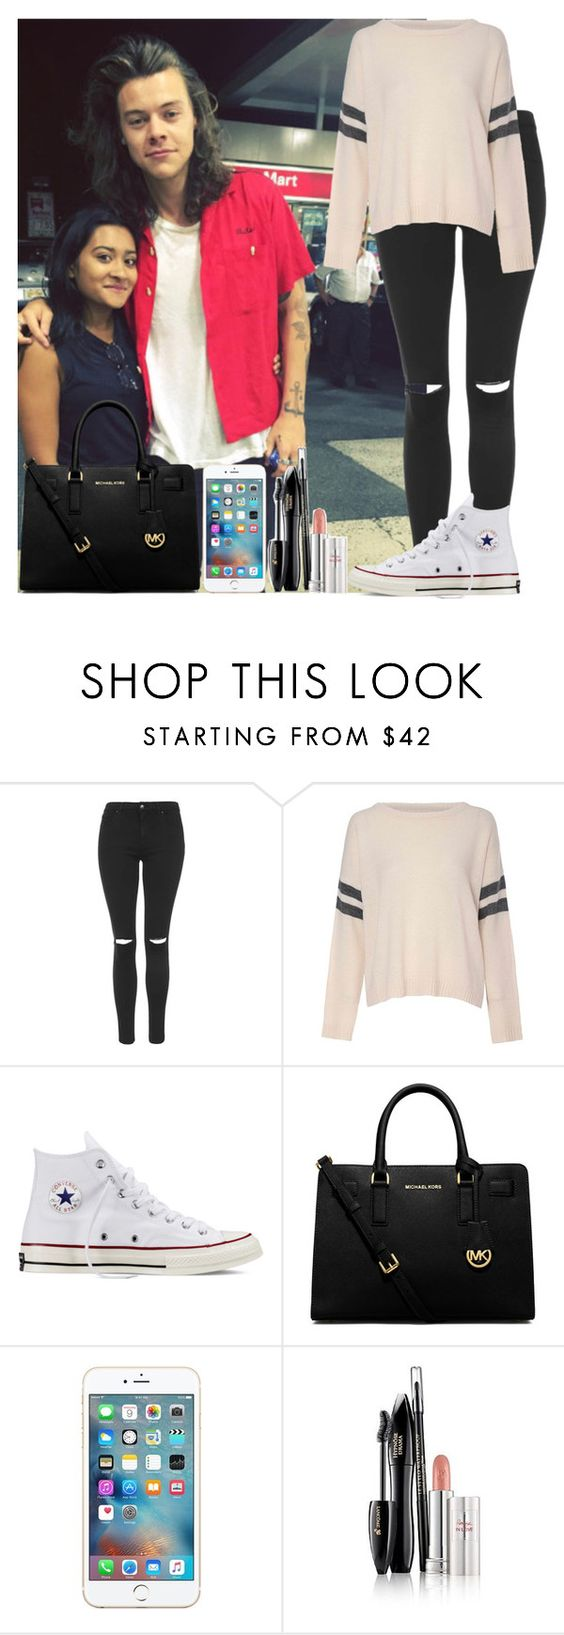 """Harry Styles"" by irish26-1 ❤ liked on Polyvore featuring Topshop, Glamorous, Converse, MICHAEL Michael Kors and Lancôme"